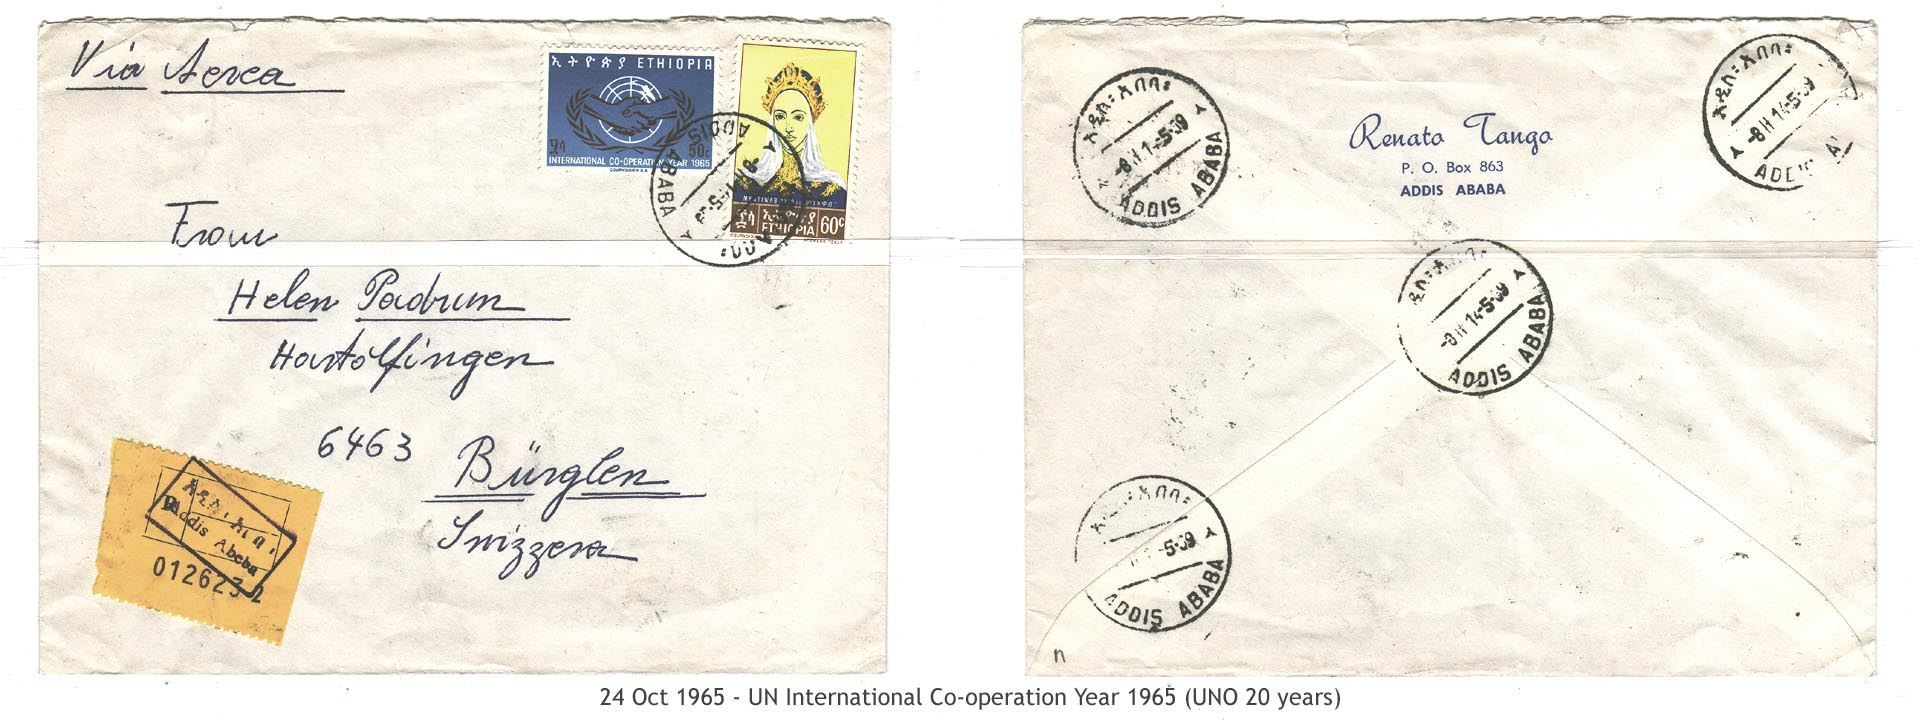 19651024 – UN International Co-operation Year 1965 (UNO 20 years)